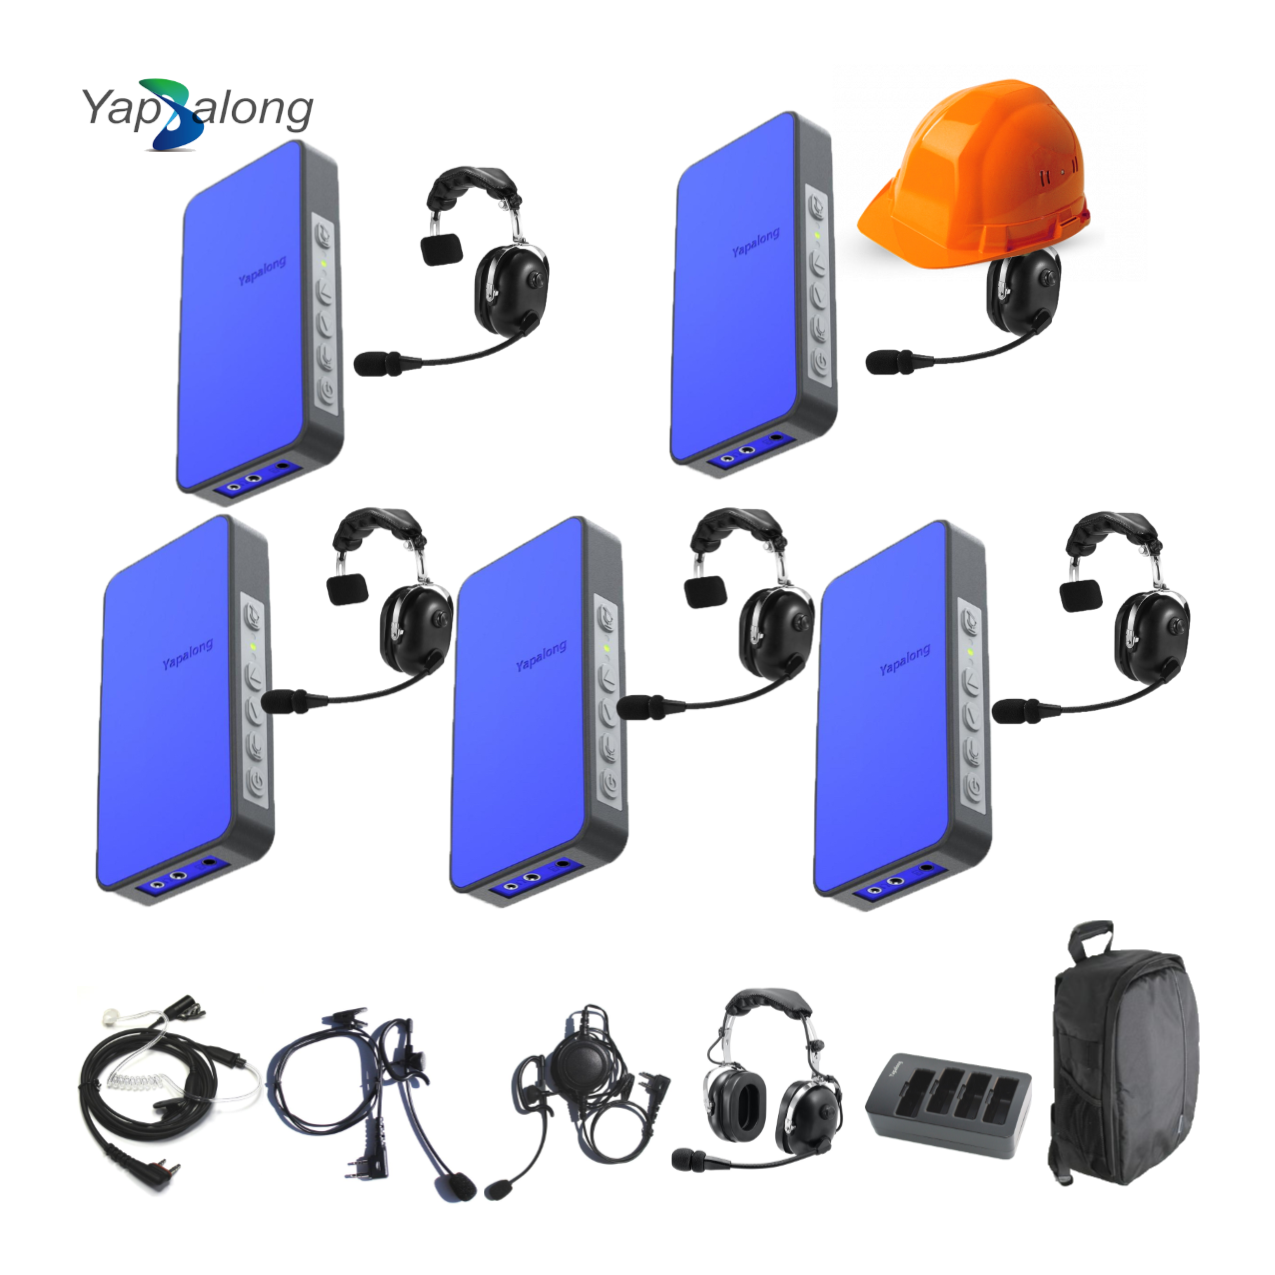 Yapalong 5000 (5-User) Industriale Complete Set Intercom Systems Intercom Systems